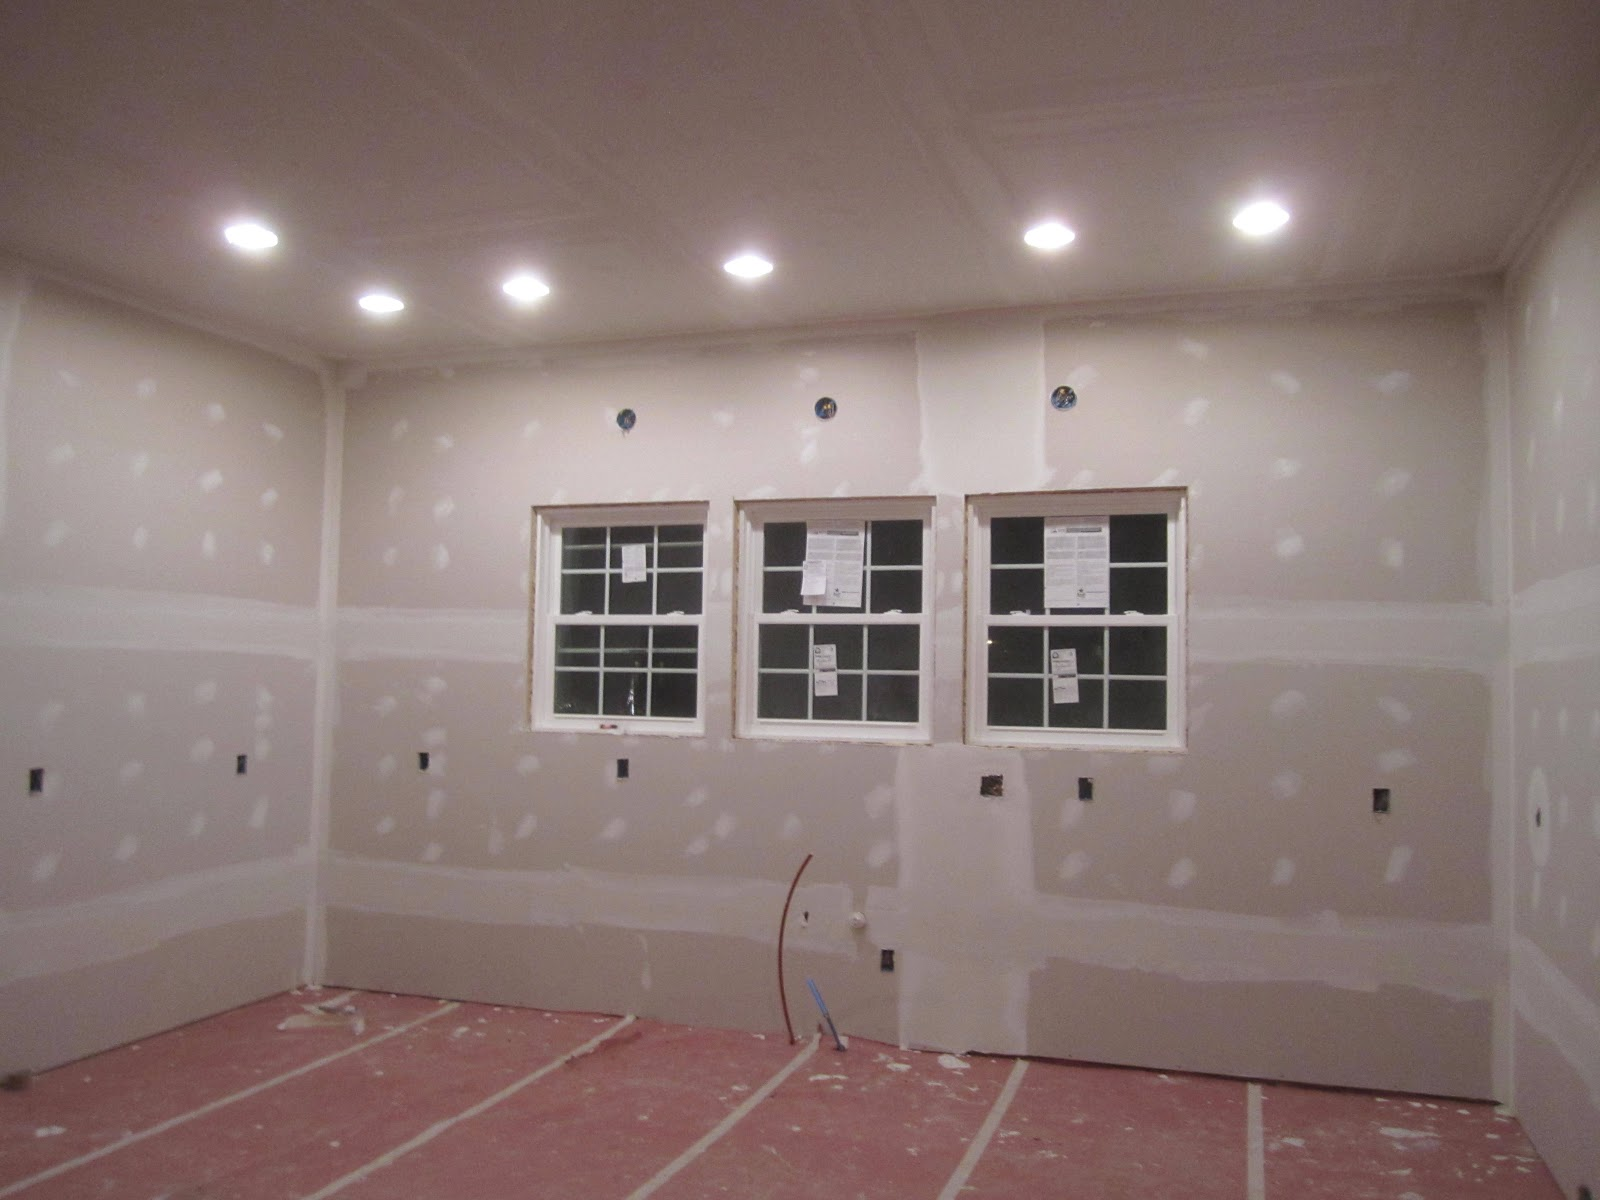 How to finish sheetrock